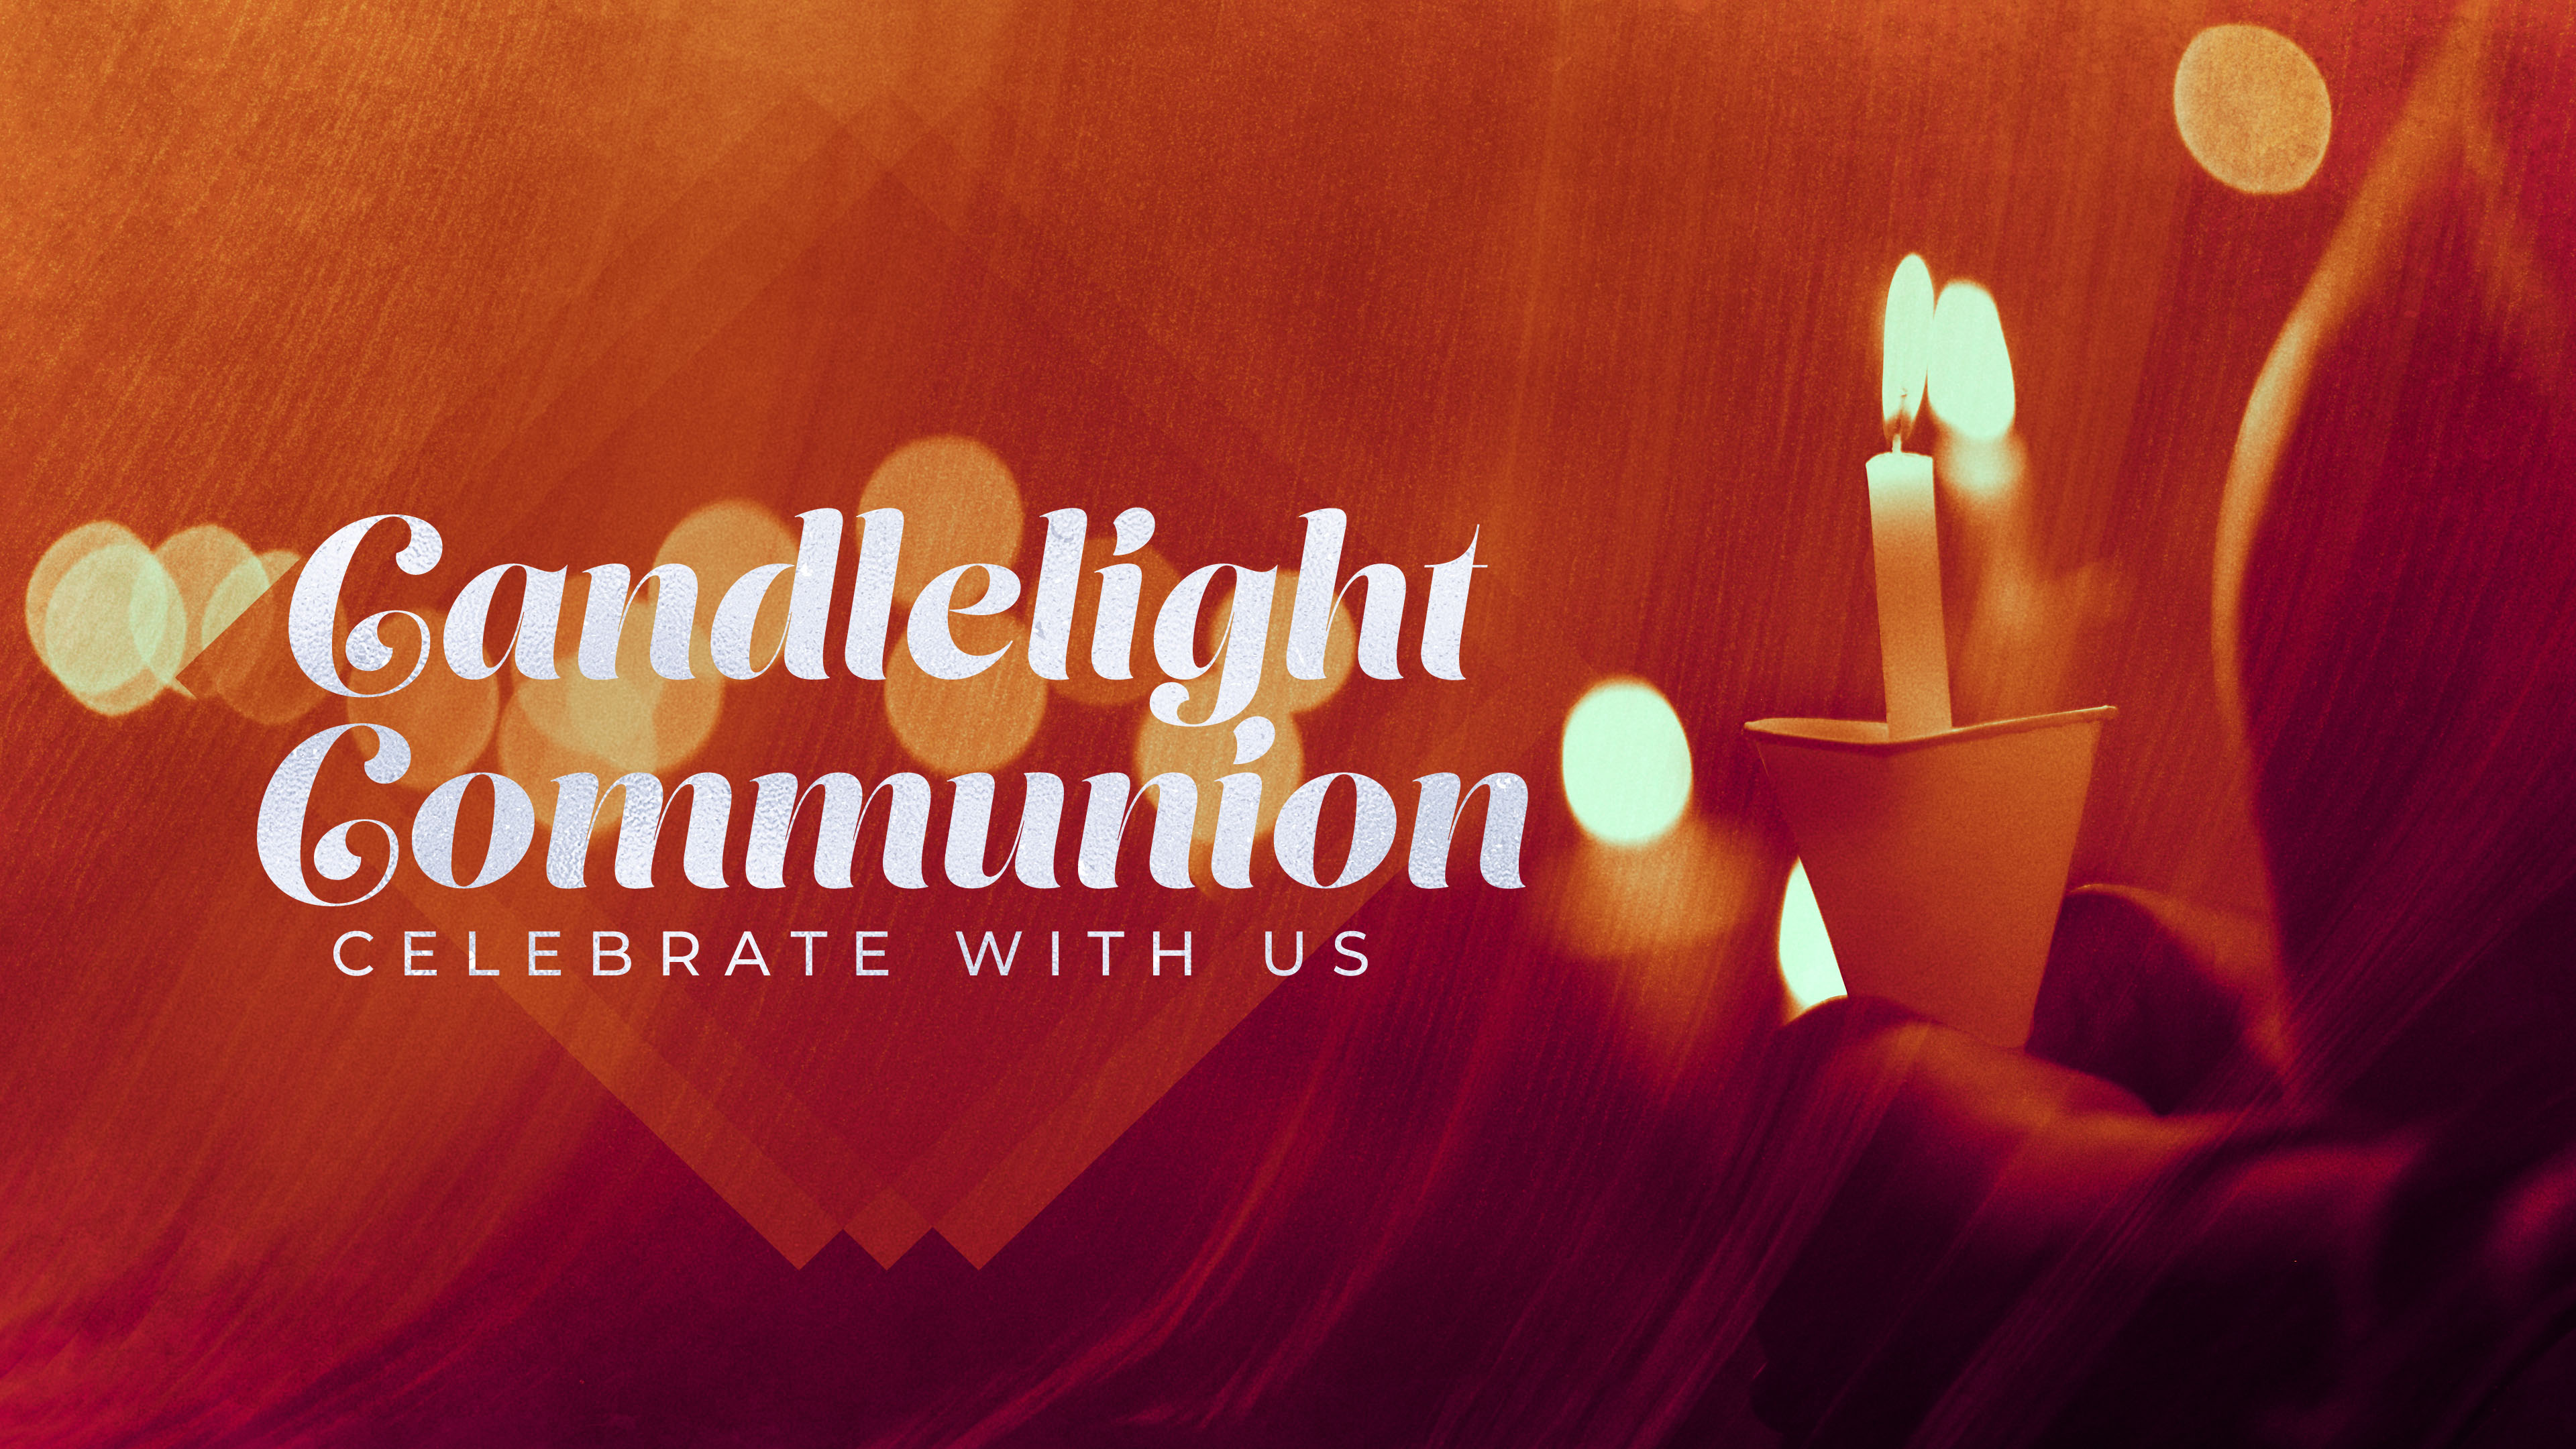 Candlelight Communion image